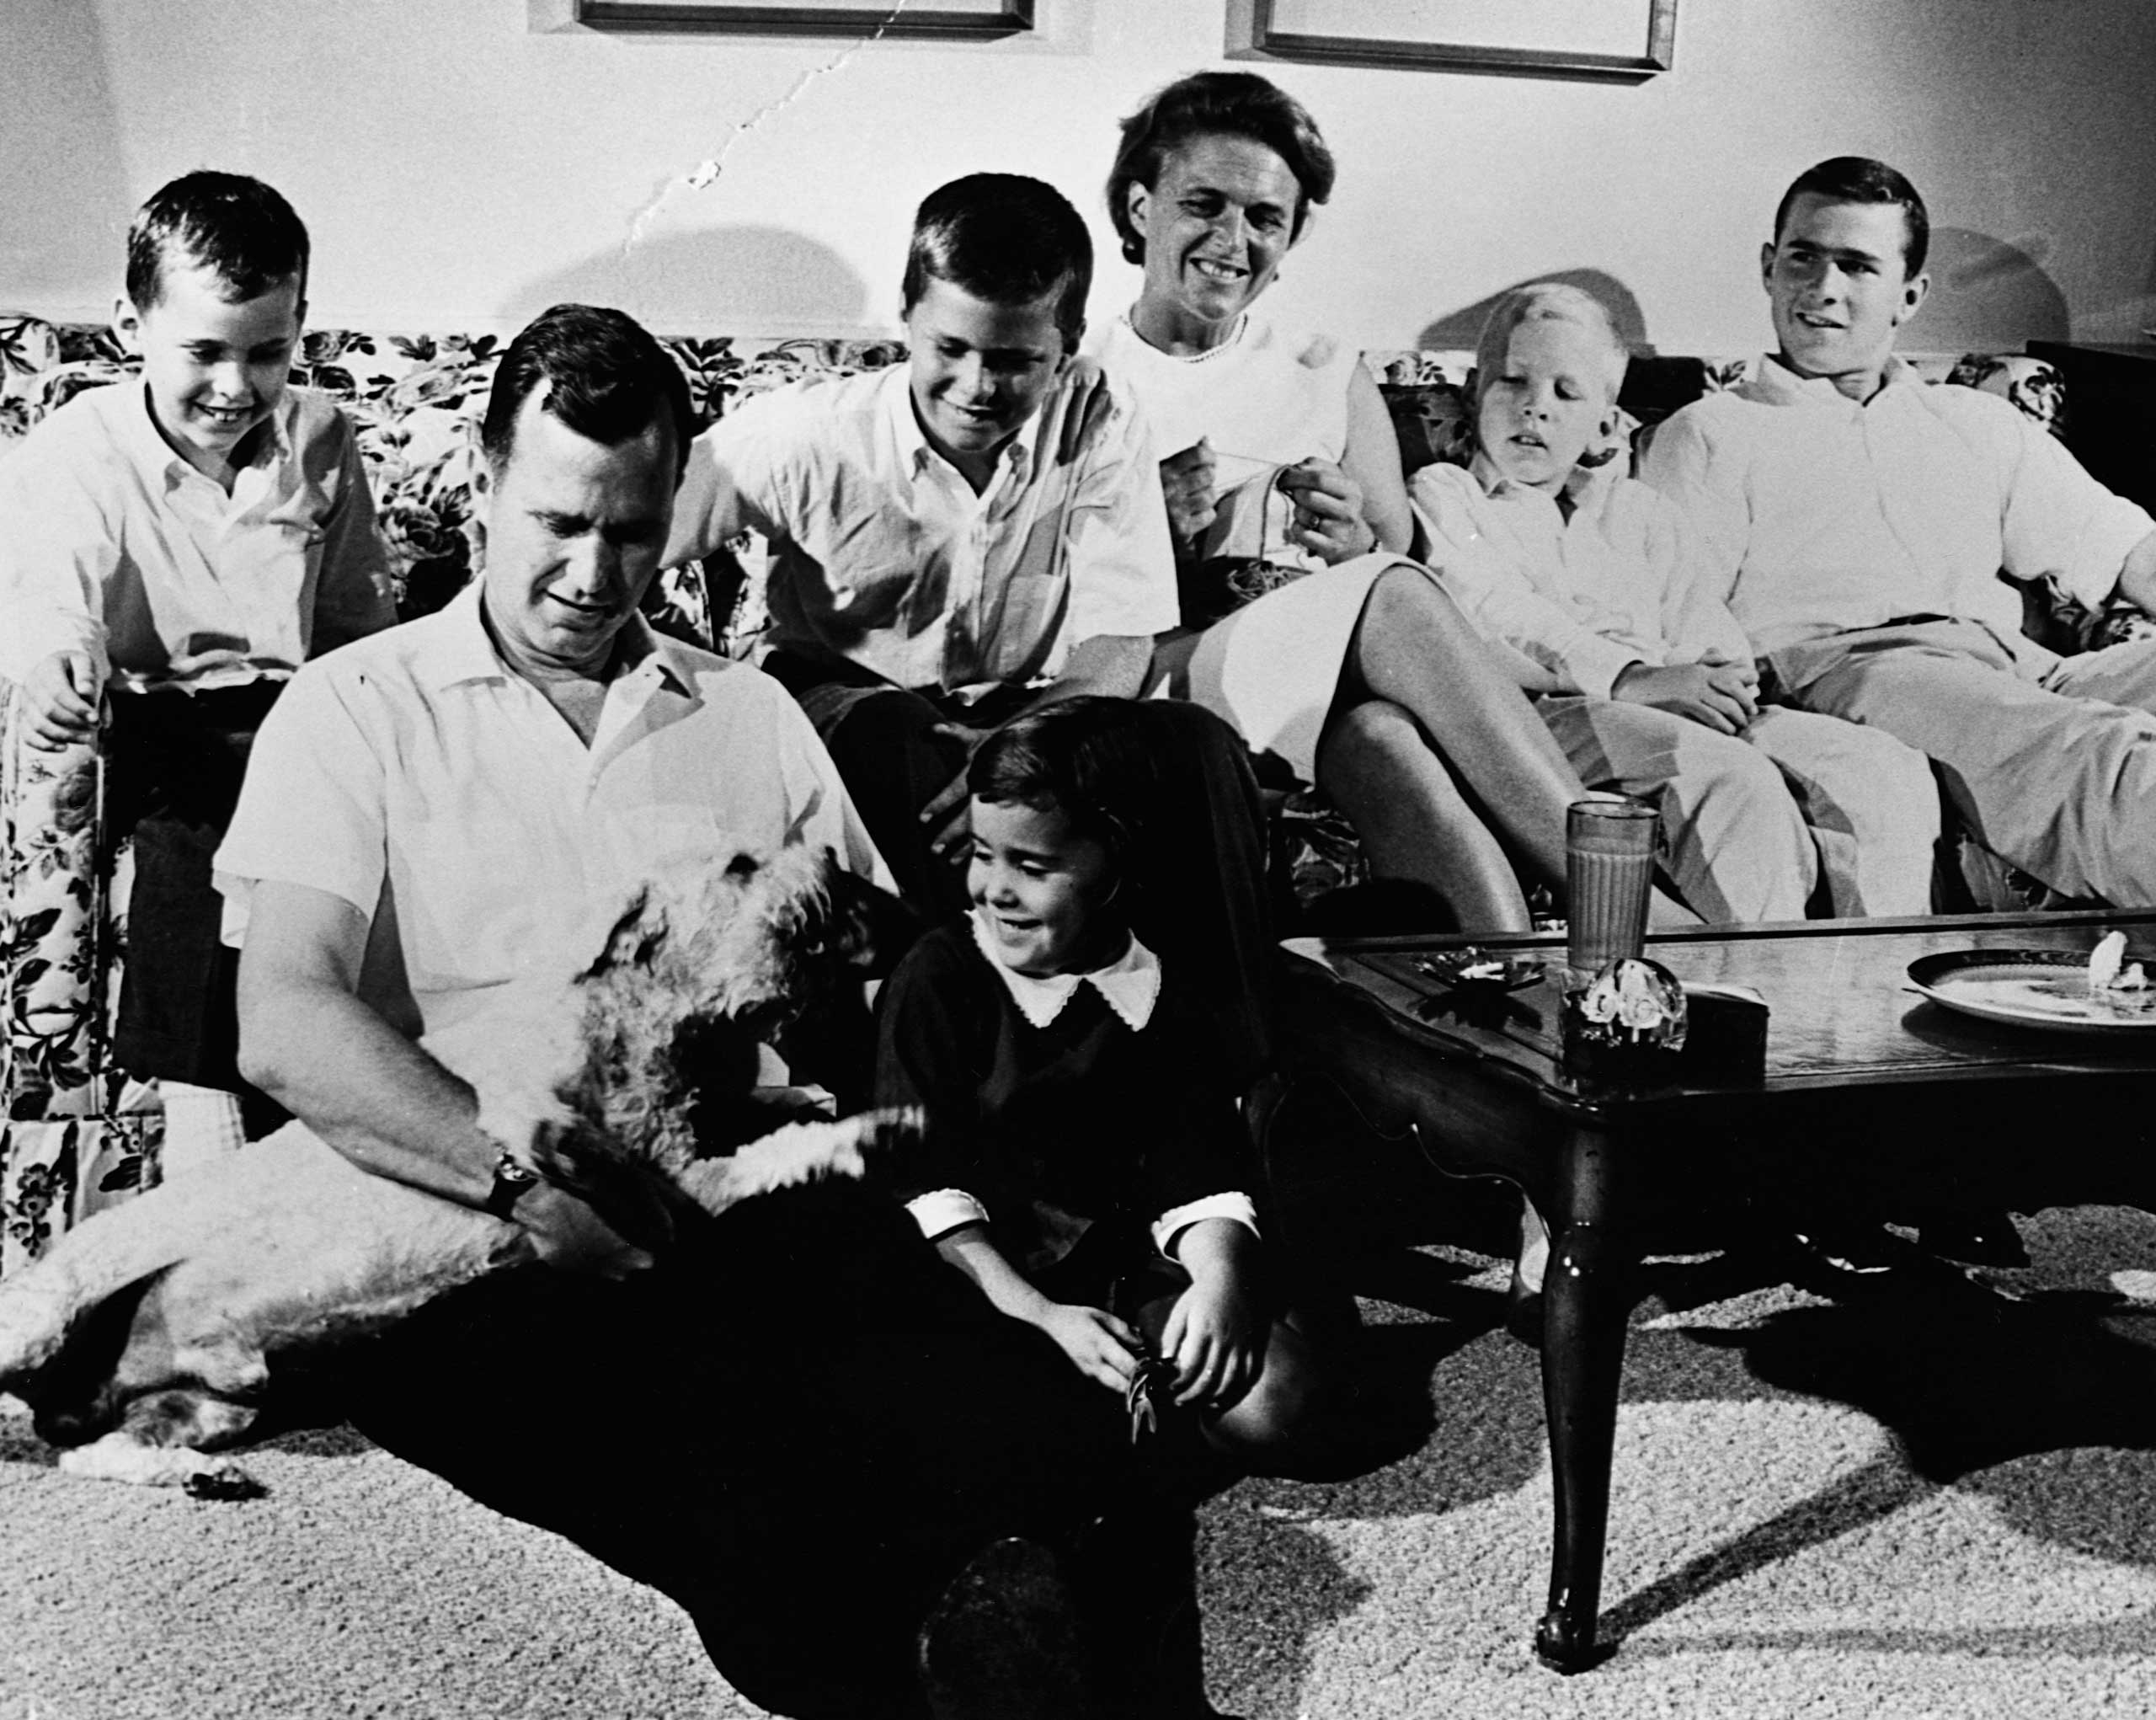 THE BUSH FAMILY: Former President George W. Bush sits at the far right. In this 1964 photo, he is joined by (from left) Marvin, George H.W. Bush, Jeb, Dorothy (on the floor), Barbara and Neil.